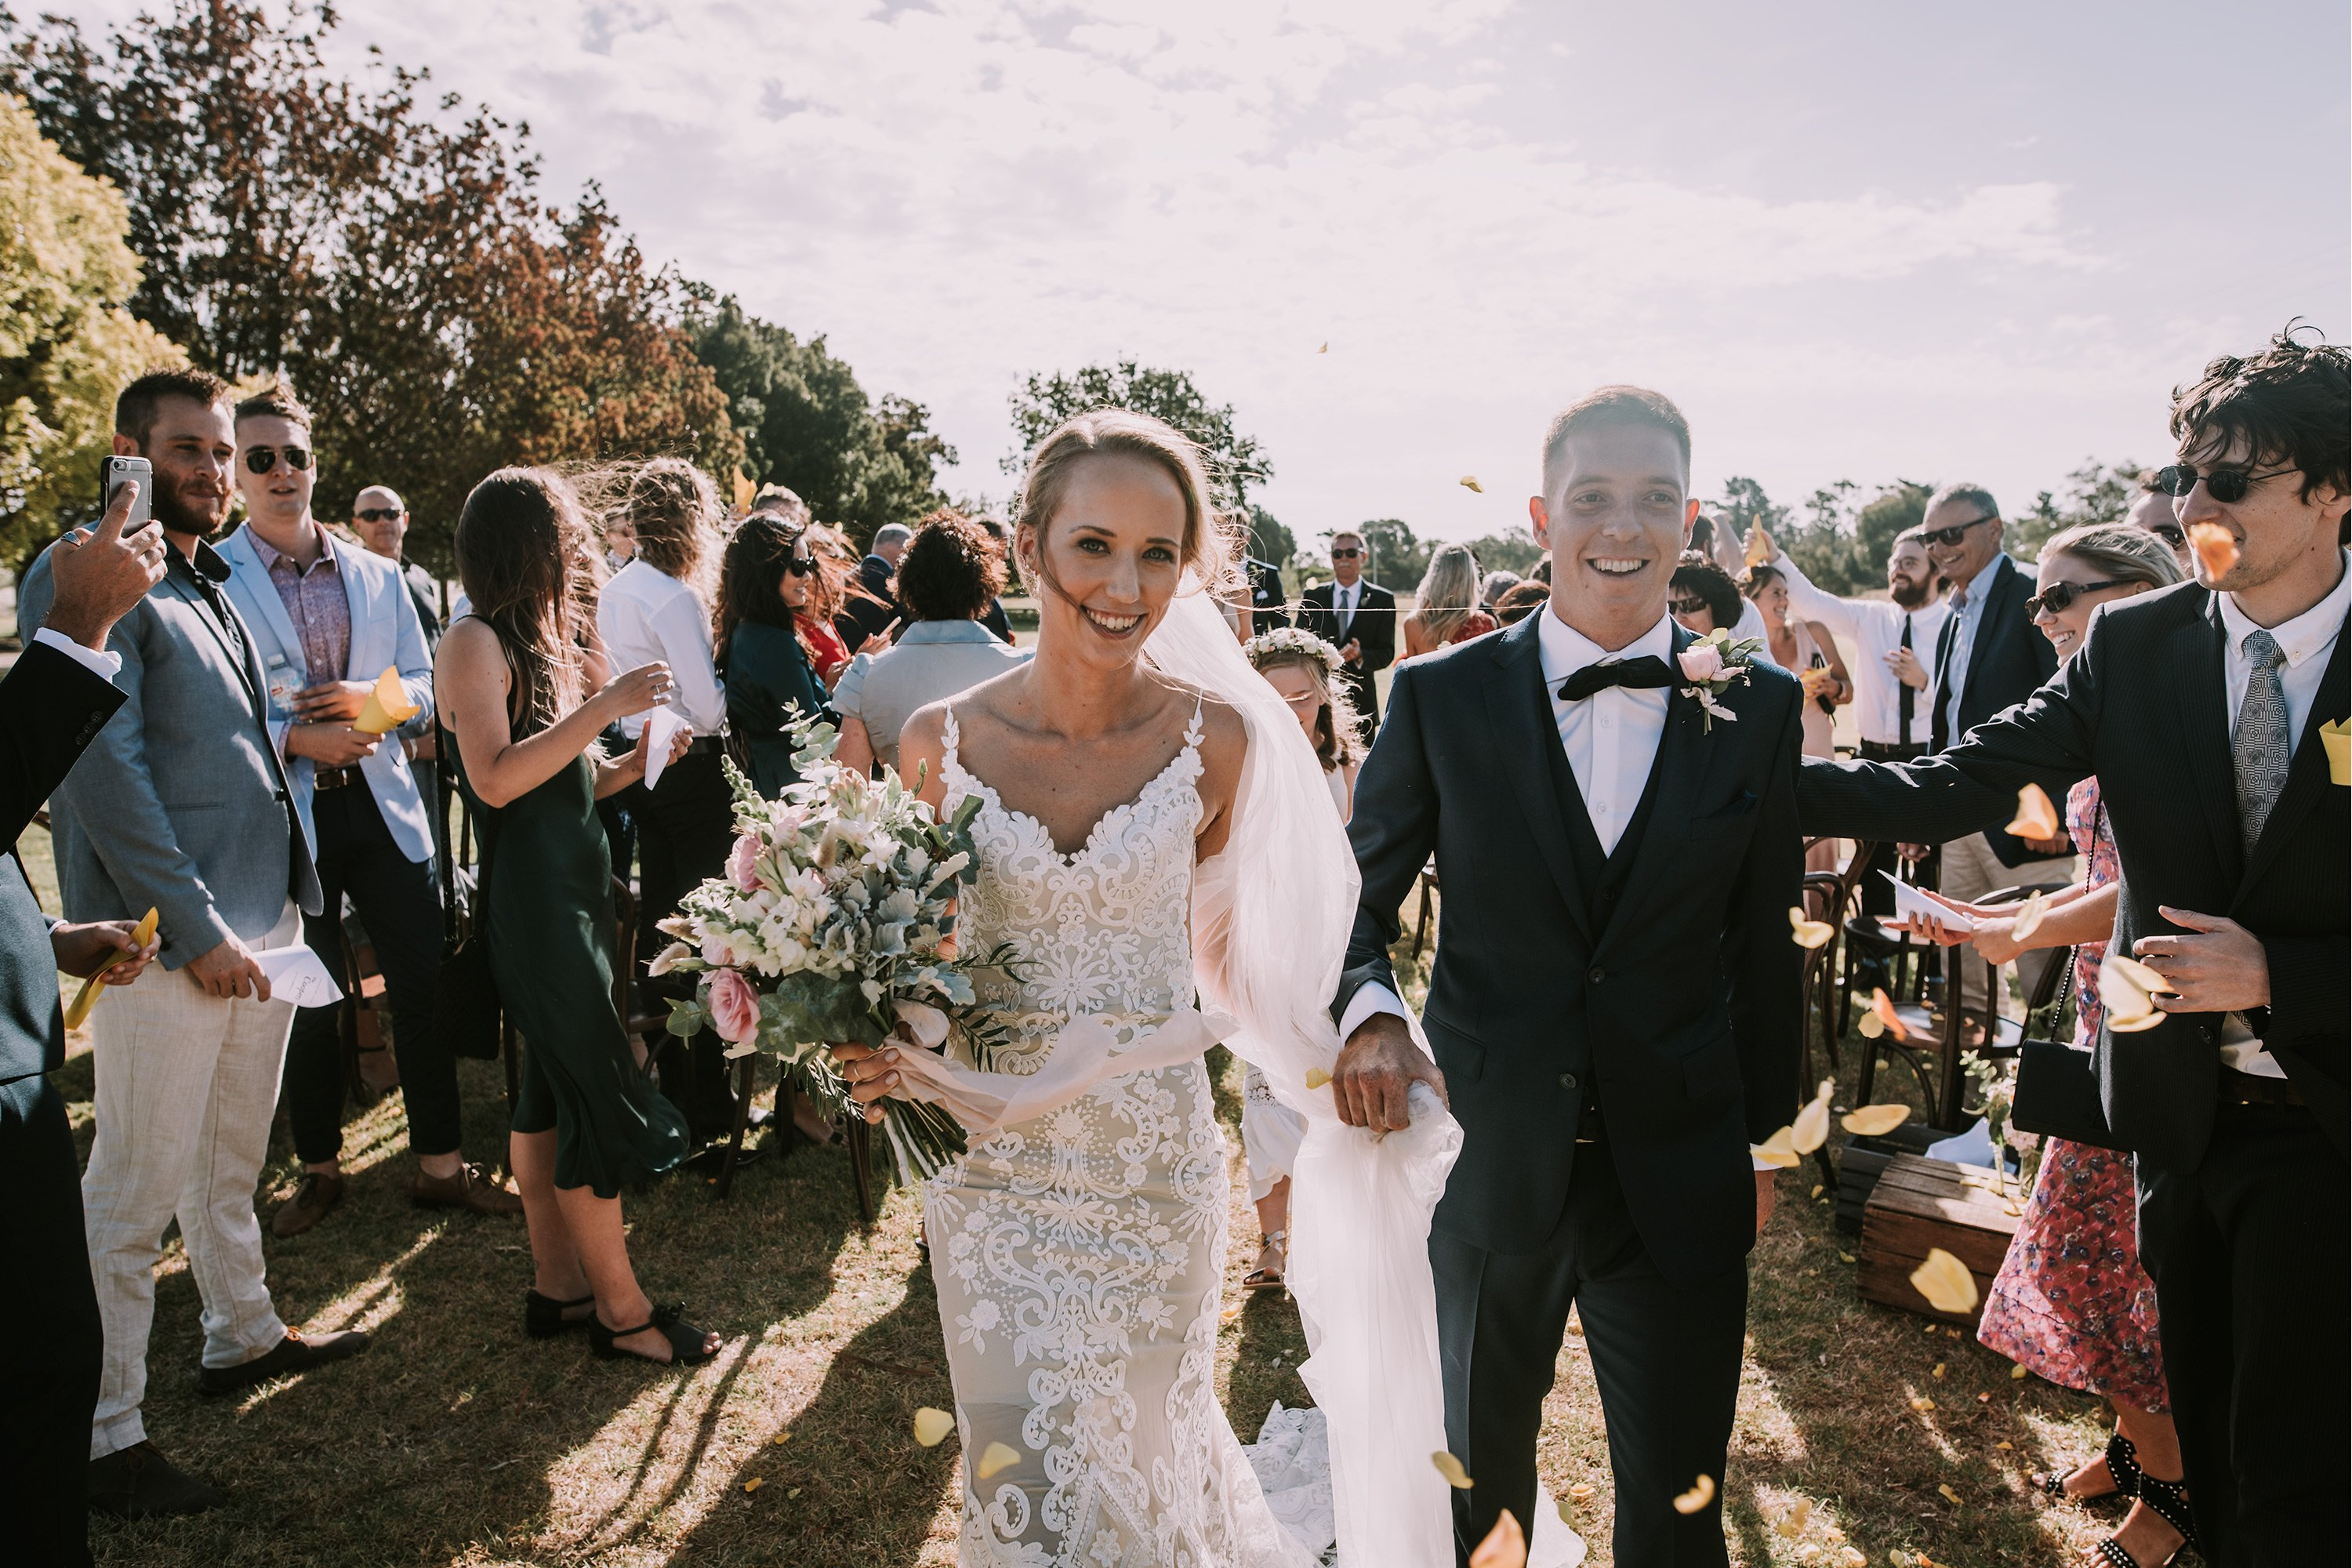 Zoe and Mark walking through confetti at Trofeo Estate